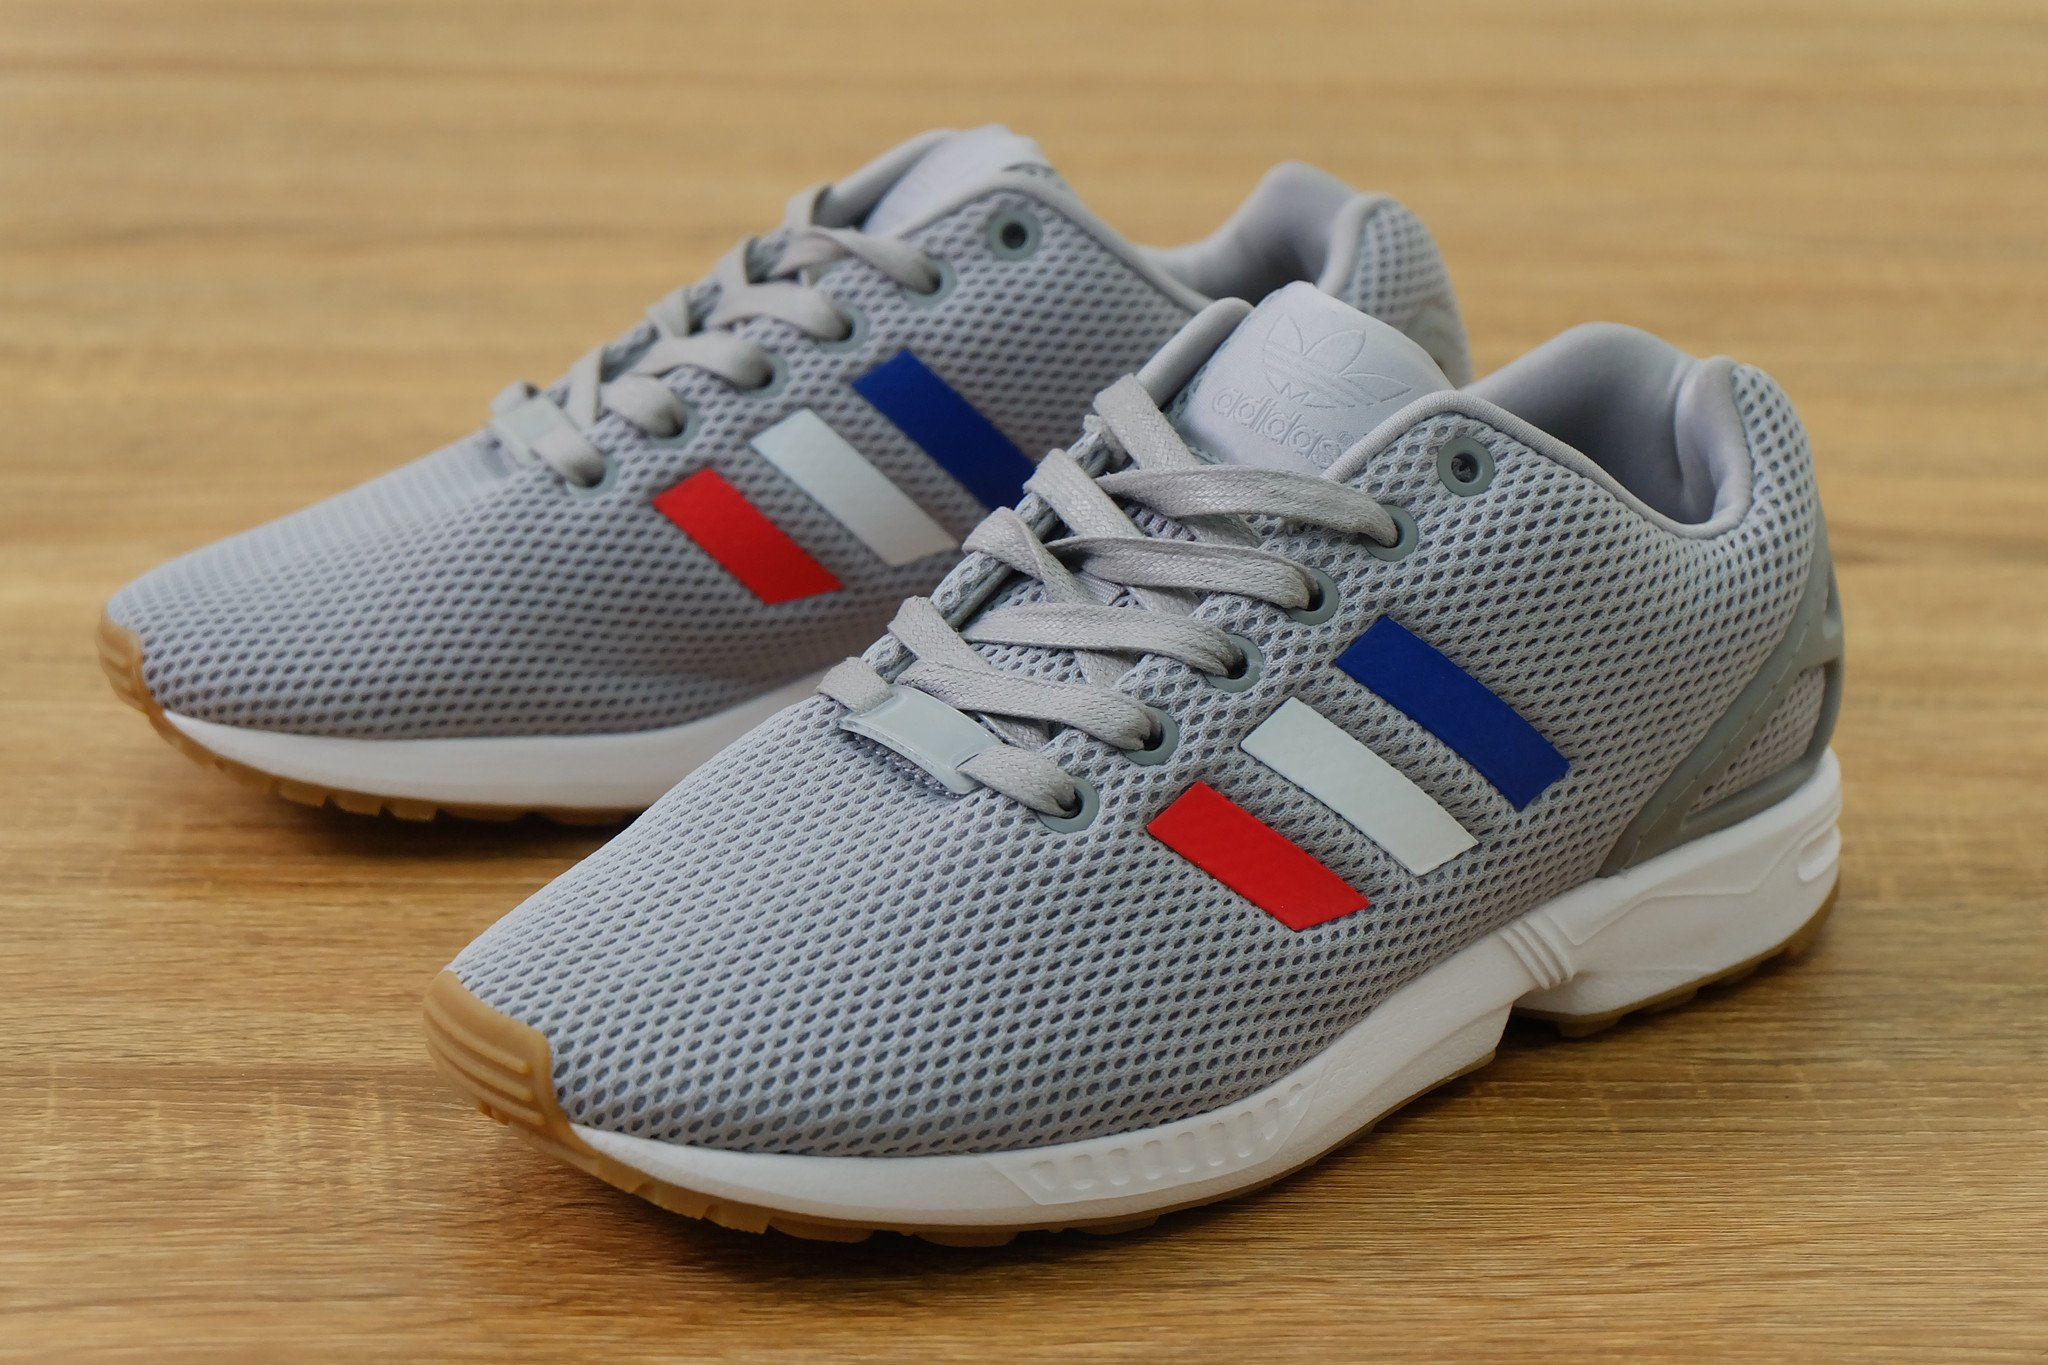 Adidas Zx Flux france